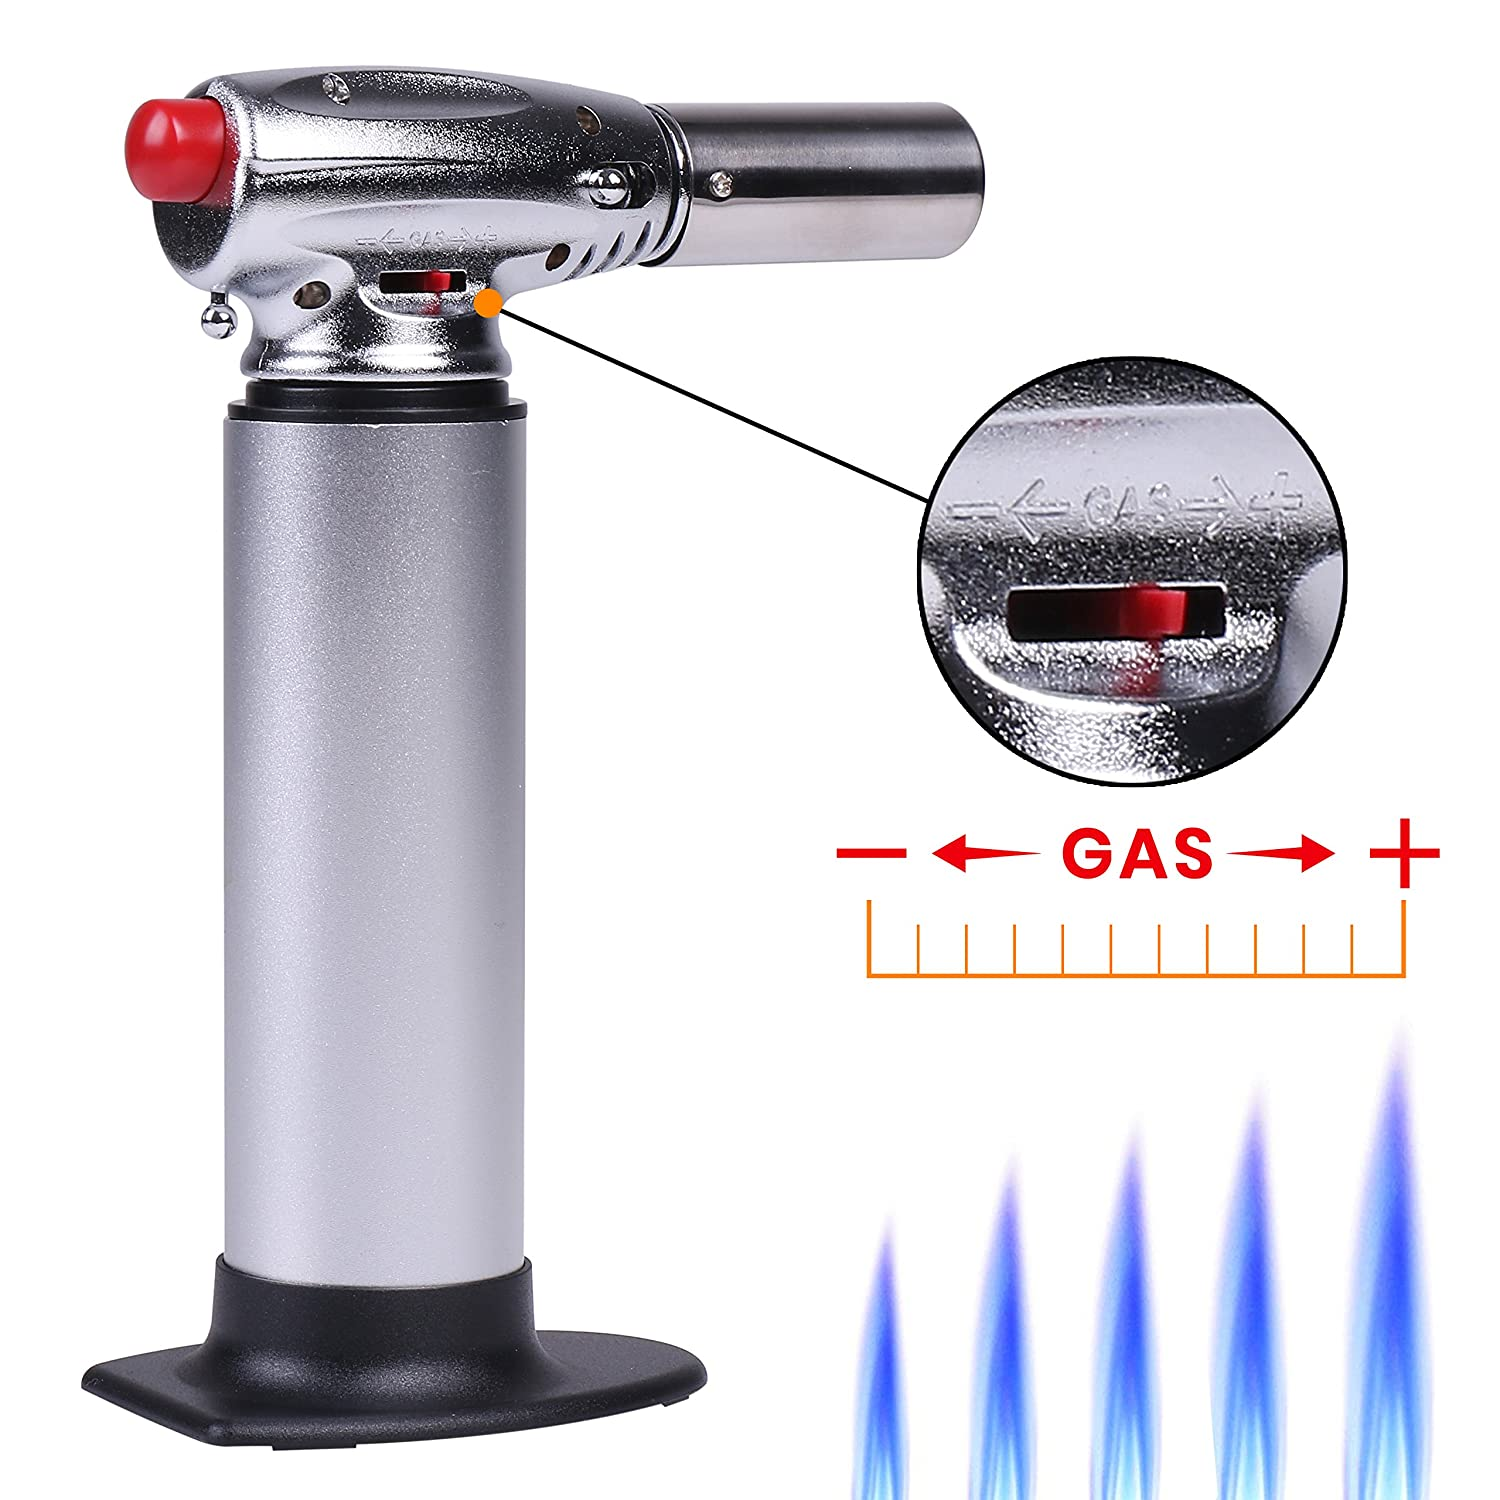 Top Torch | Culinary Butane Food Torch | Refillable, Pull Down